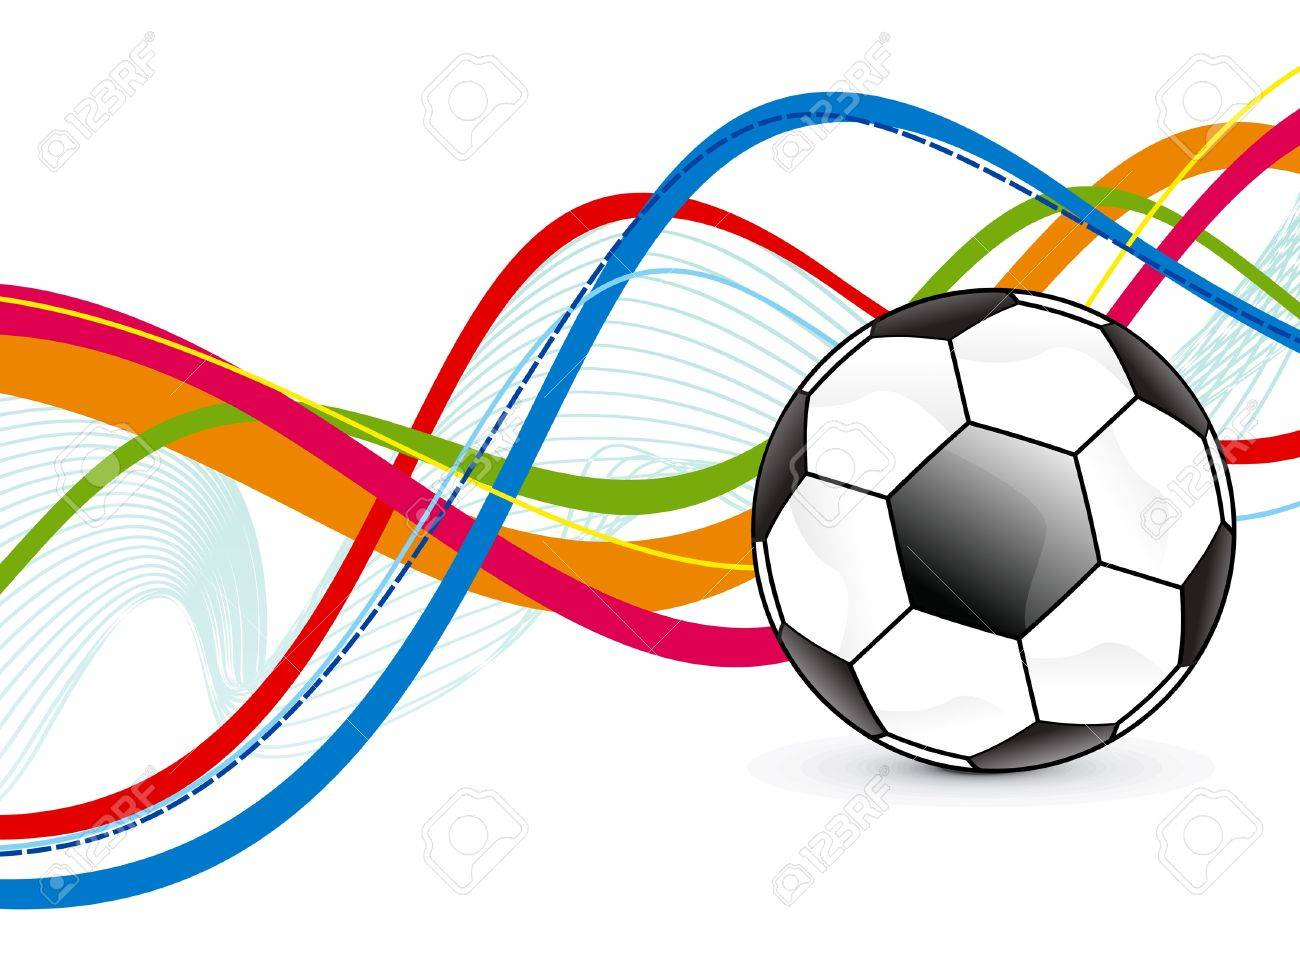 abstract colorful football background illustration Stock Vector - 18258108